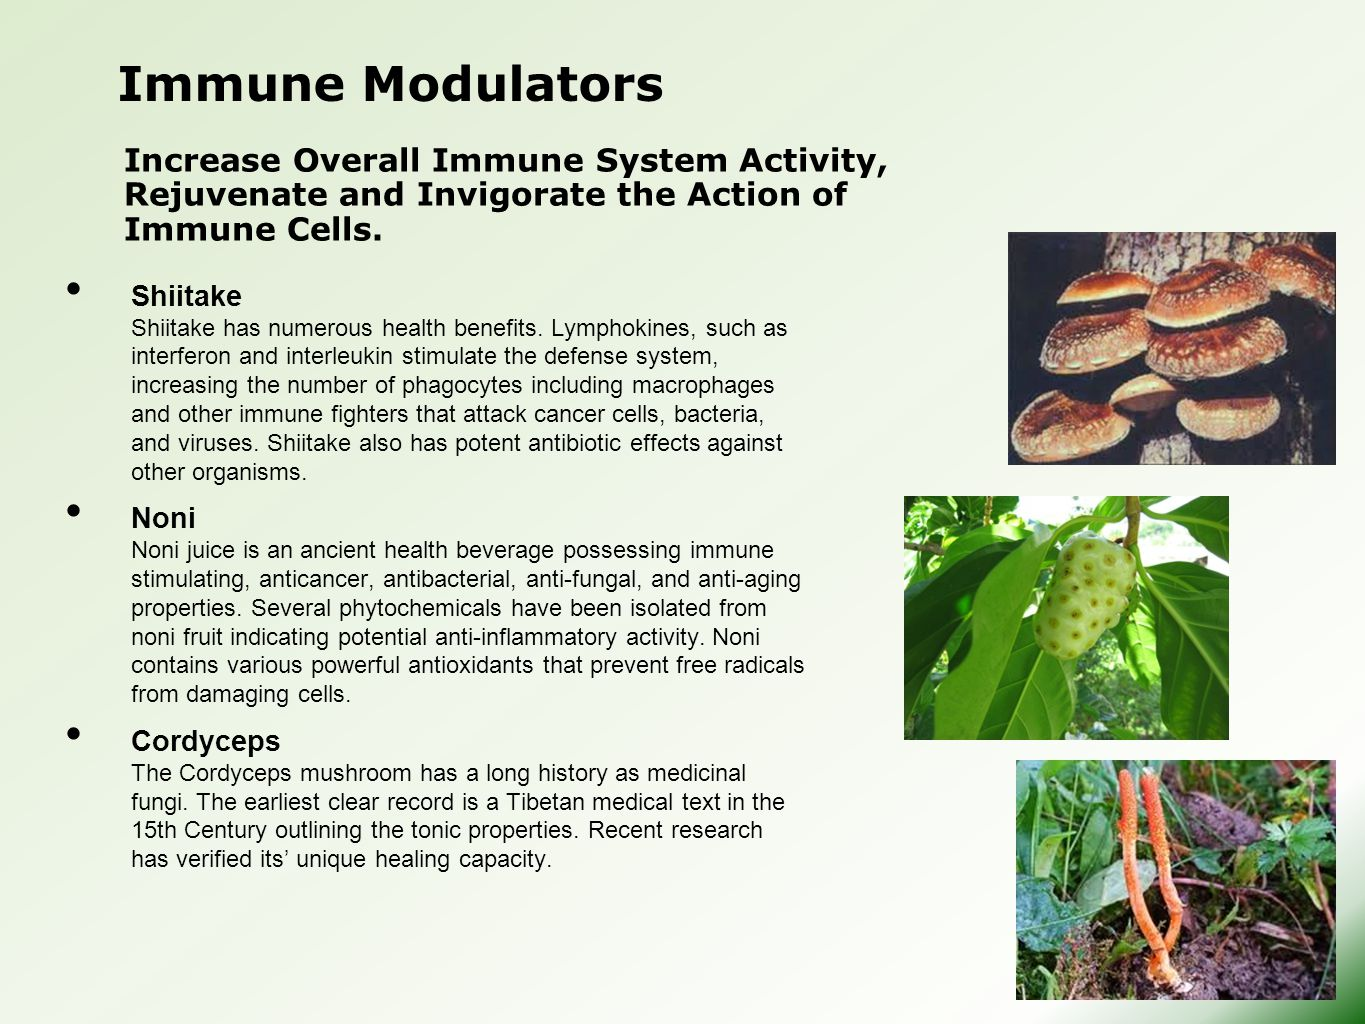 Immune Modulators Increase Overall Immune System Activity, Rejuvenate and Invigorate the Action of Immune Cells.